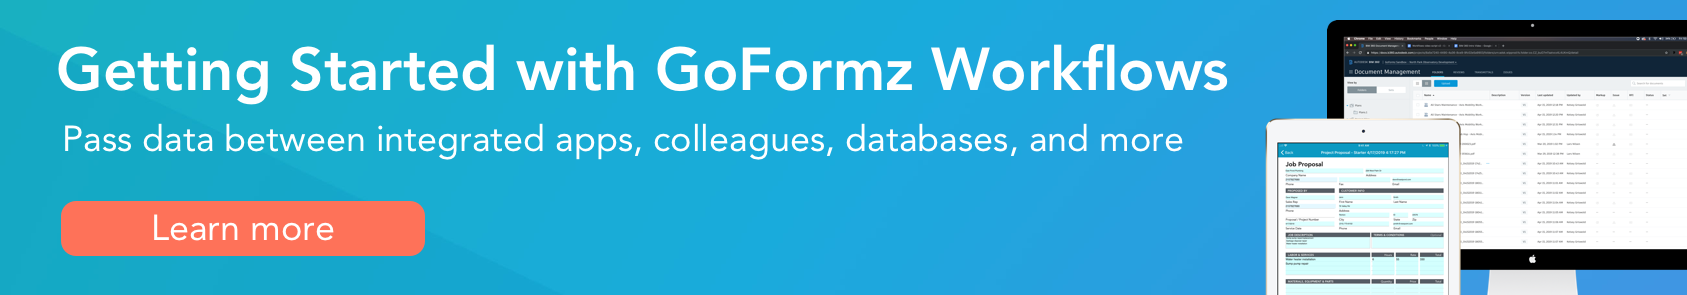 Banner: Getting Started With GoFormz Workflows - click here to read the blog post